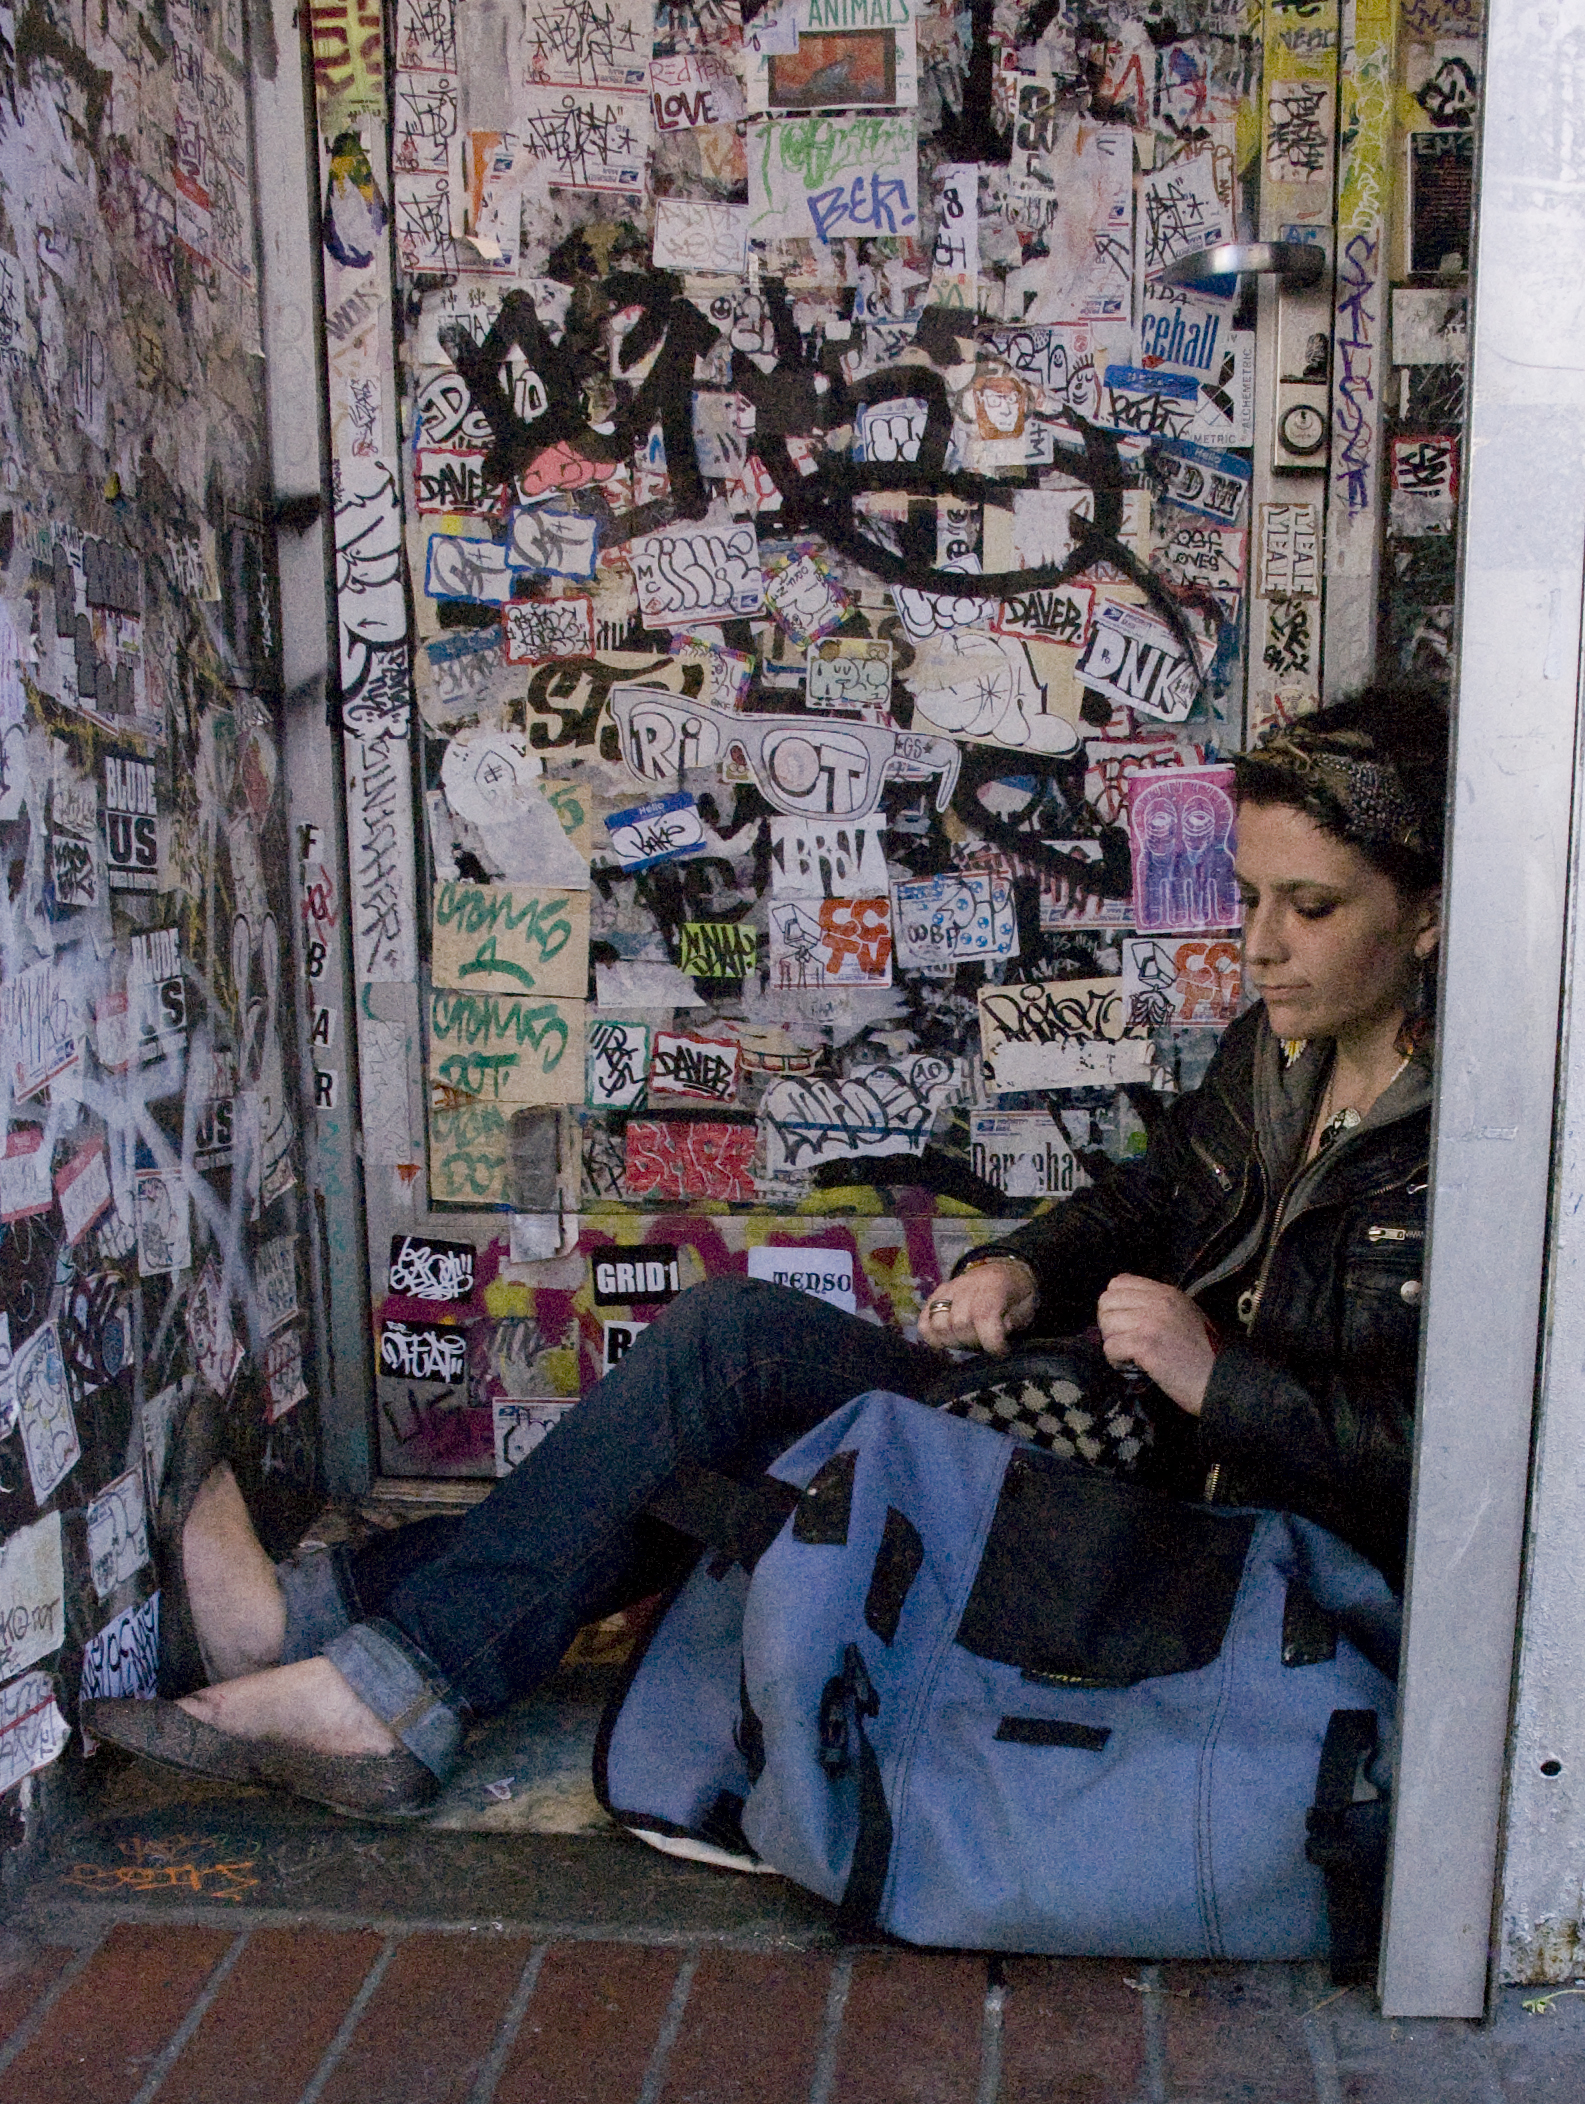 A woman sits in a doorway on Market Street at 6th Street in San Francisco, Calif.Wednesday, Nov. 2, 2011.